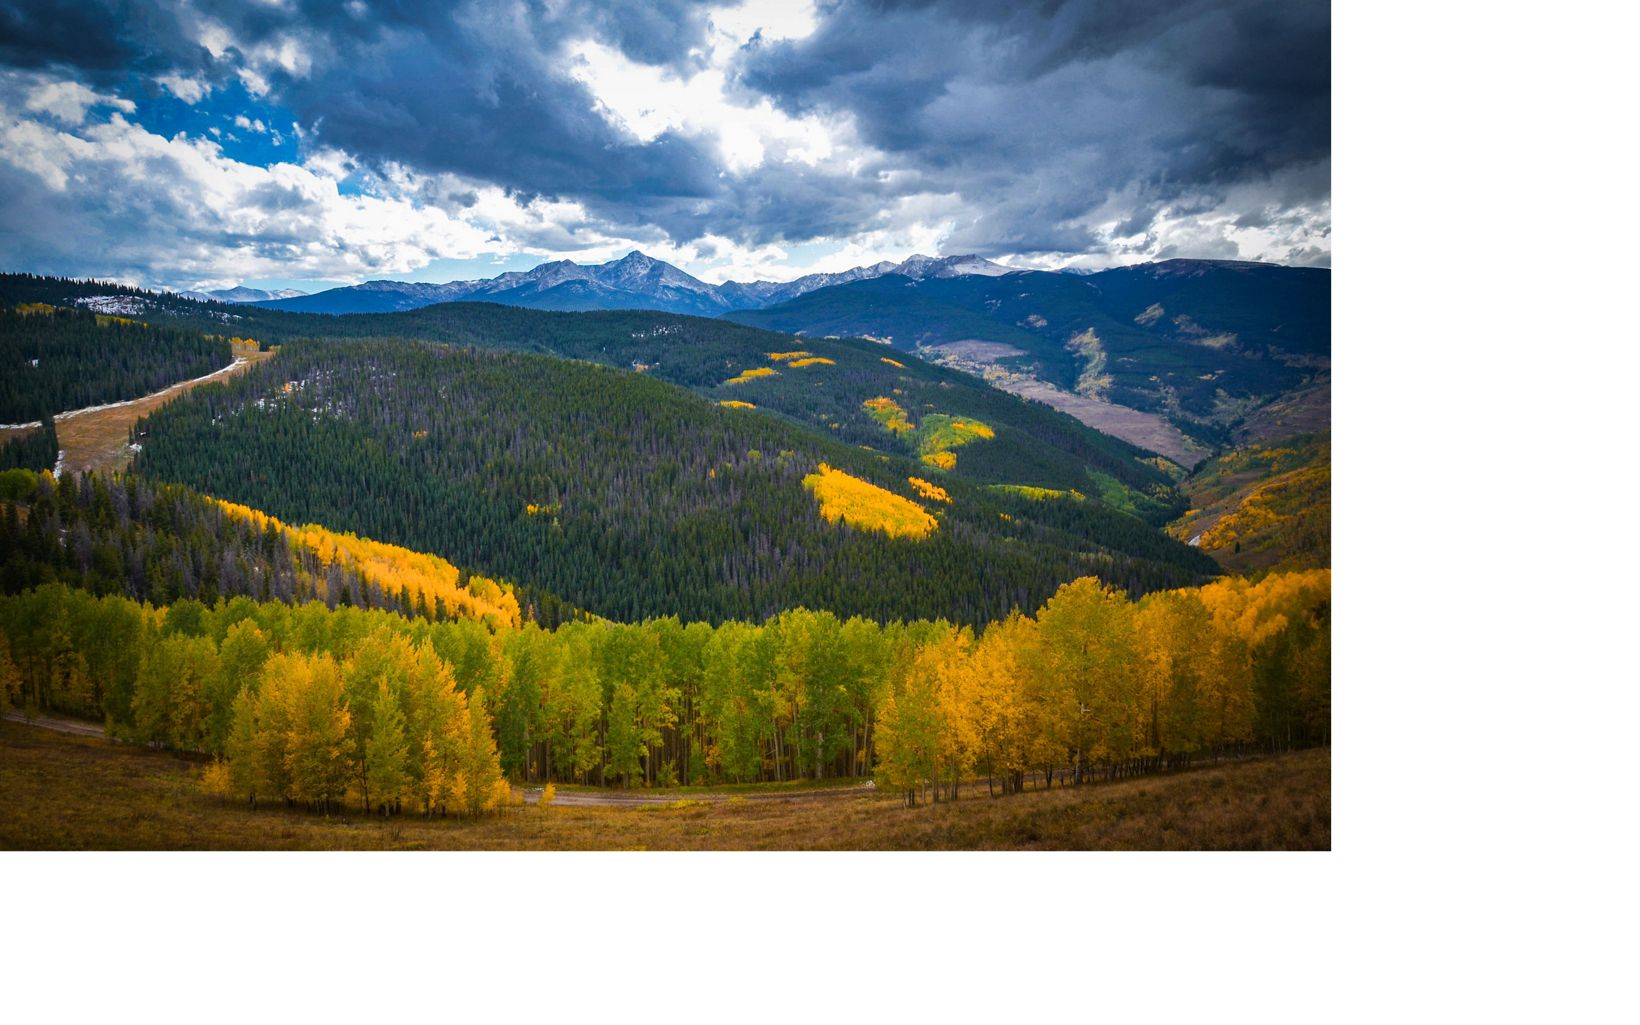 Mount of the Holy Cross in the Sawatch Range near Vail, CO.